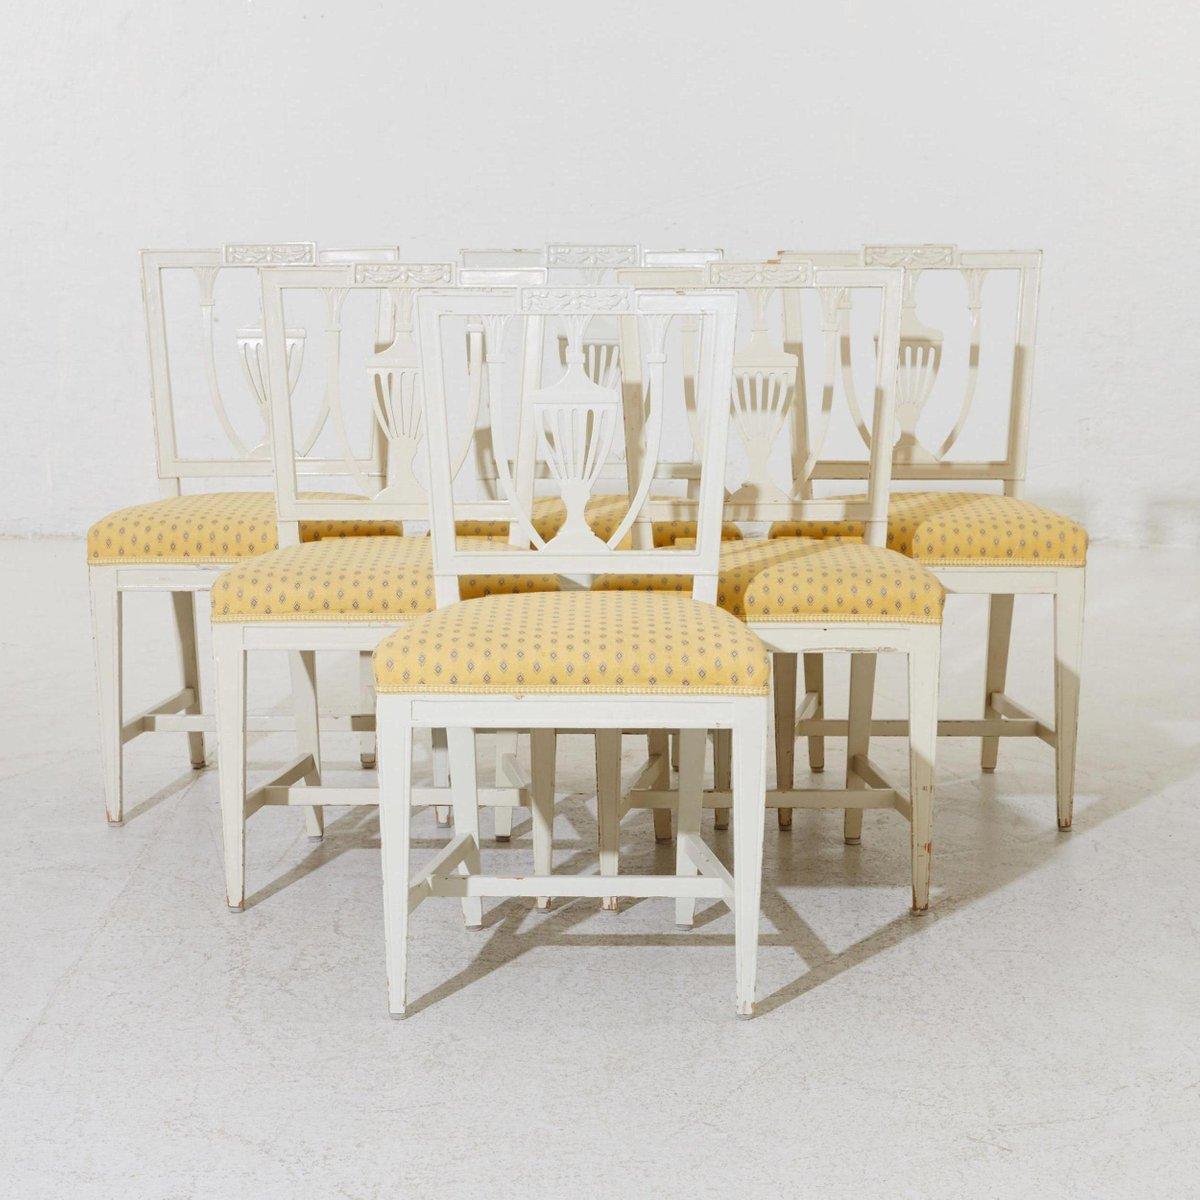 19th Century Swedish Gustavian Chairs Set of 6 for sale at Pamono